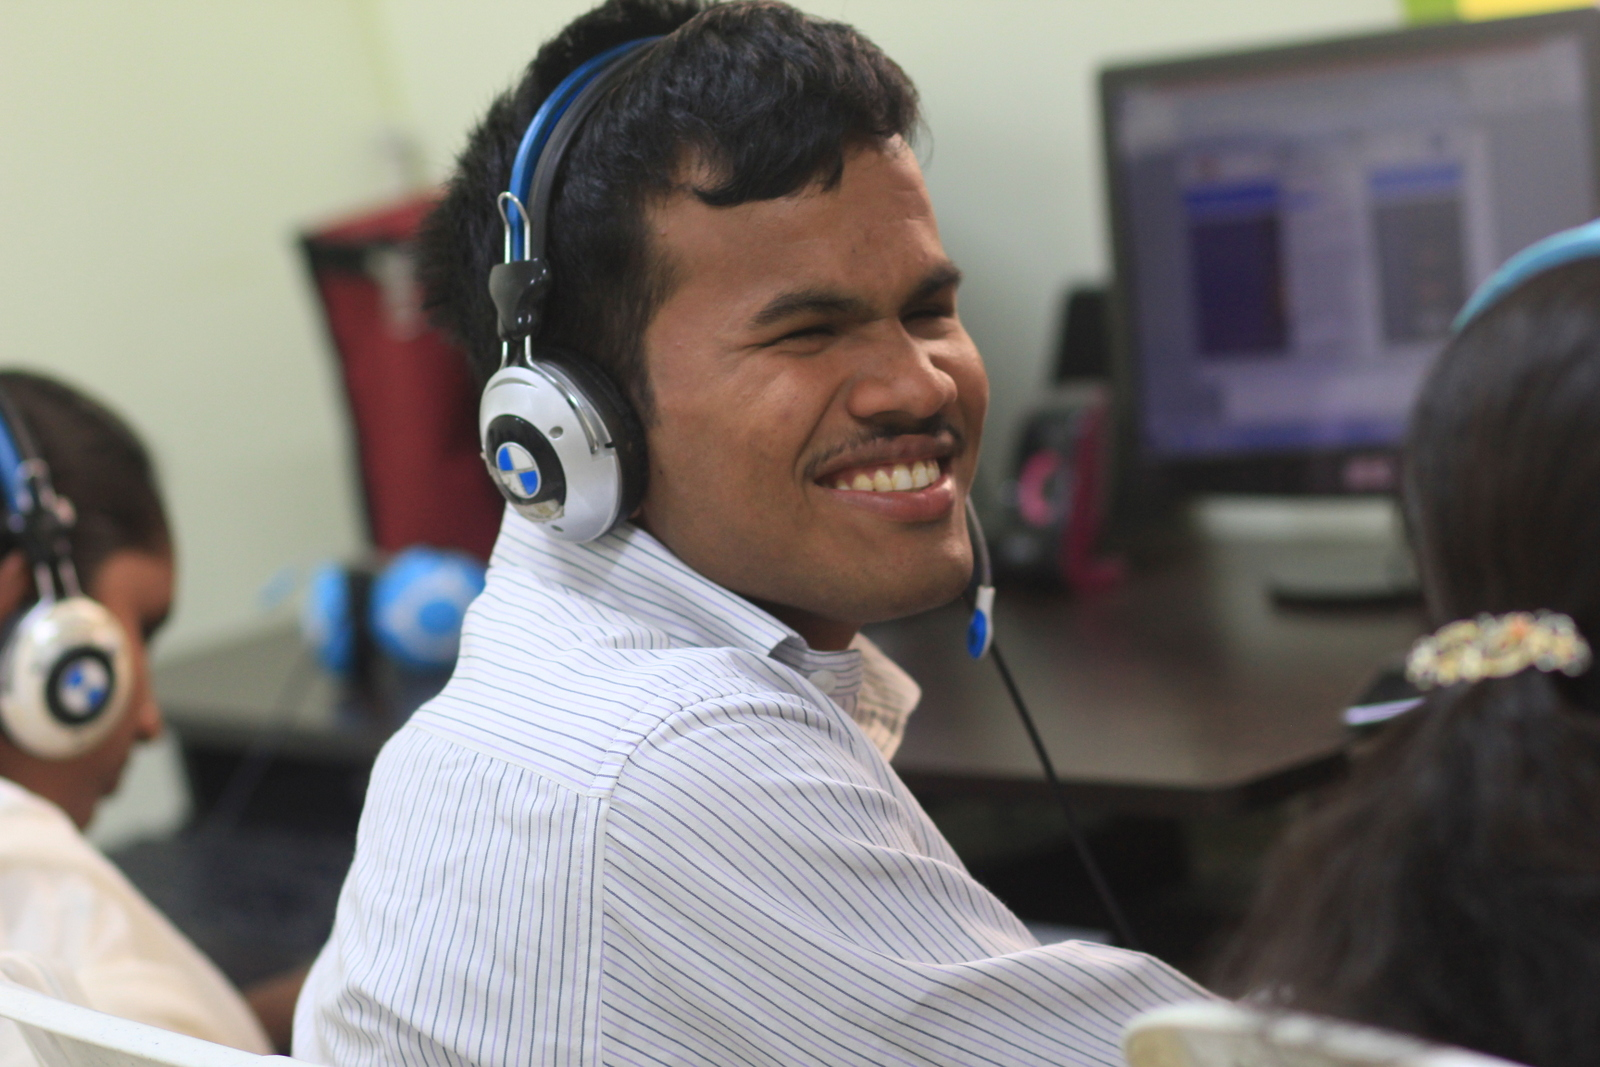 Person with vision impairment smiling with headset